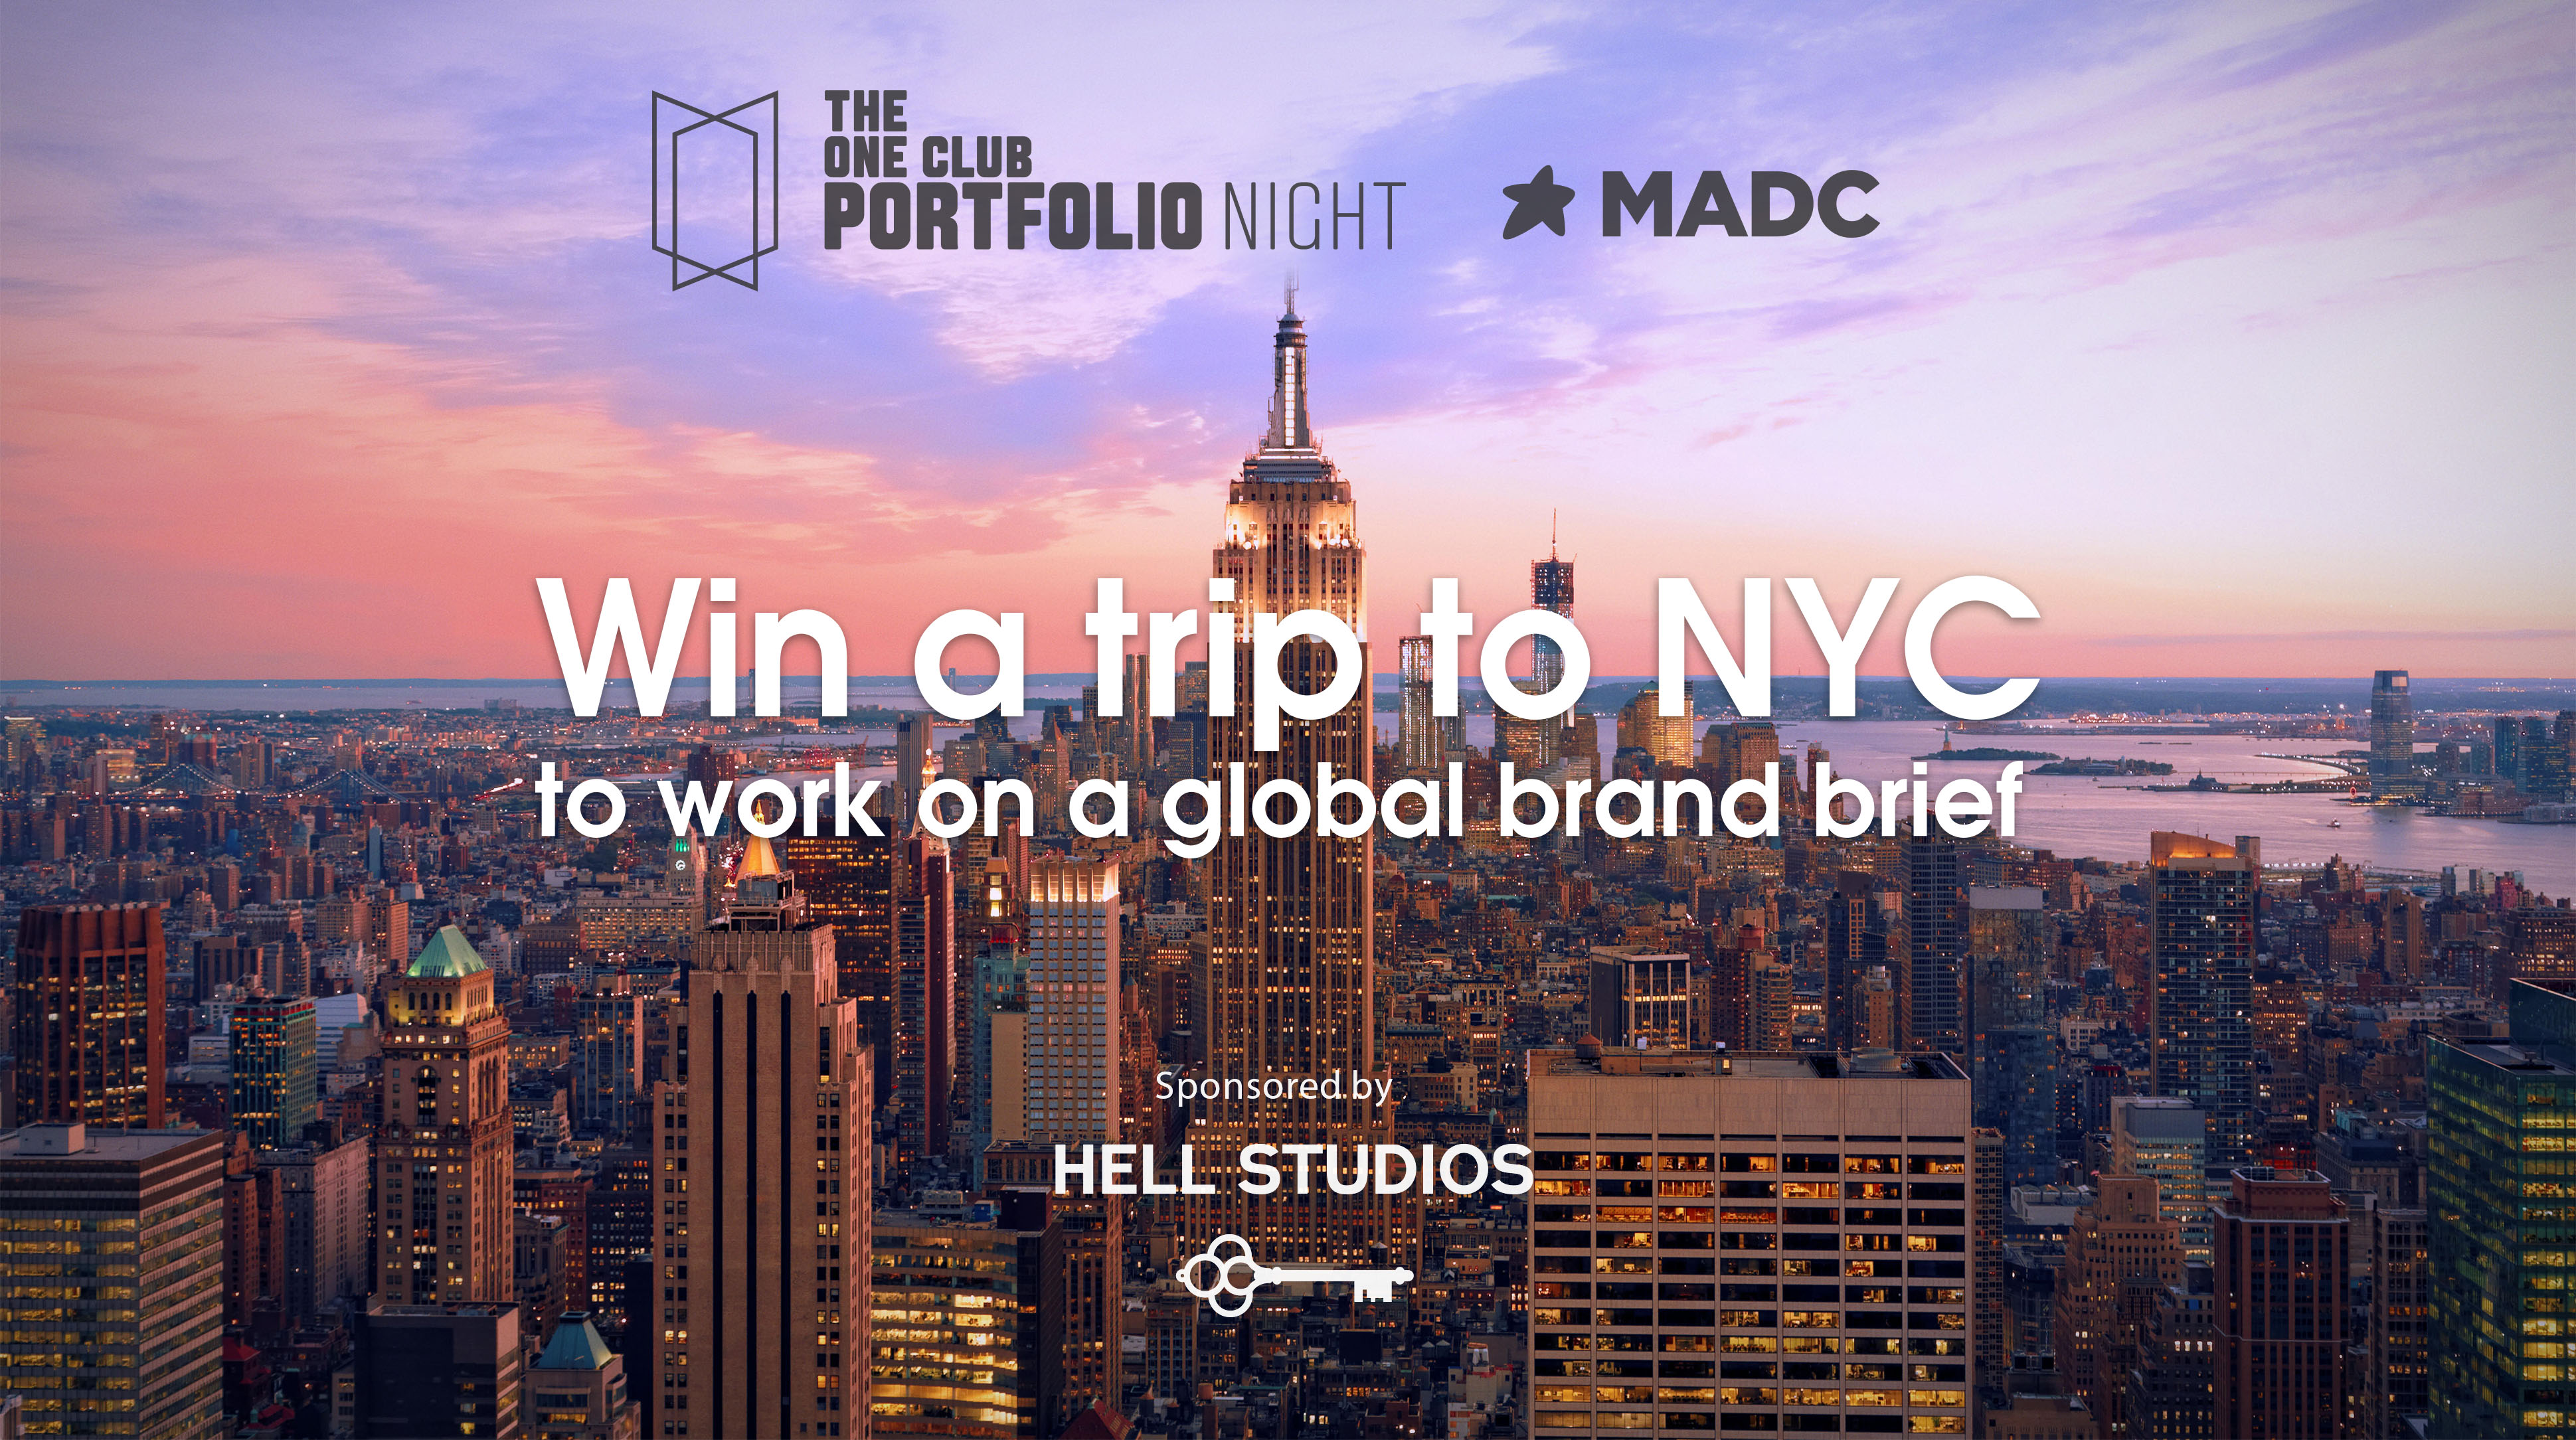 Melbourne's junior creatives can win the ultimate trip to New York City thanks to MADC + The One Club for Creativity's Portfolio Night